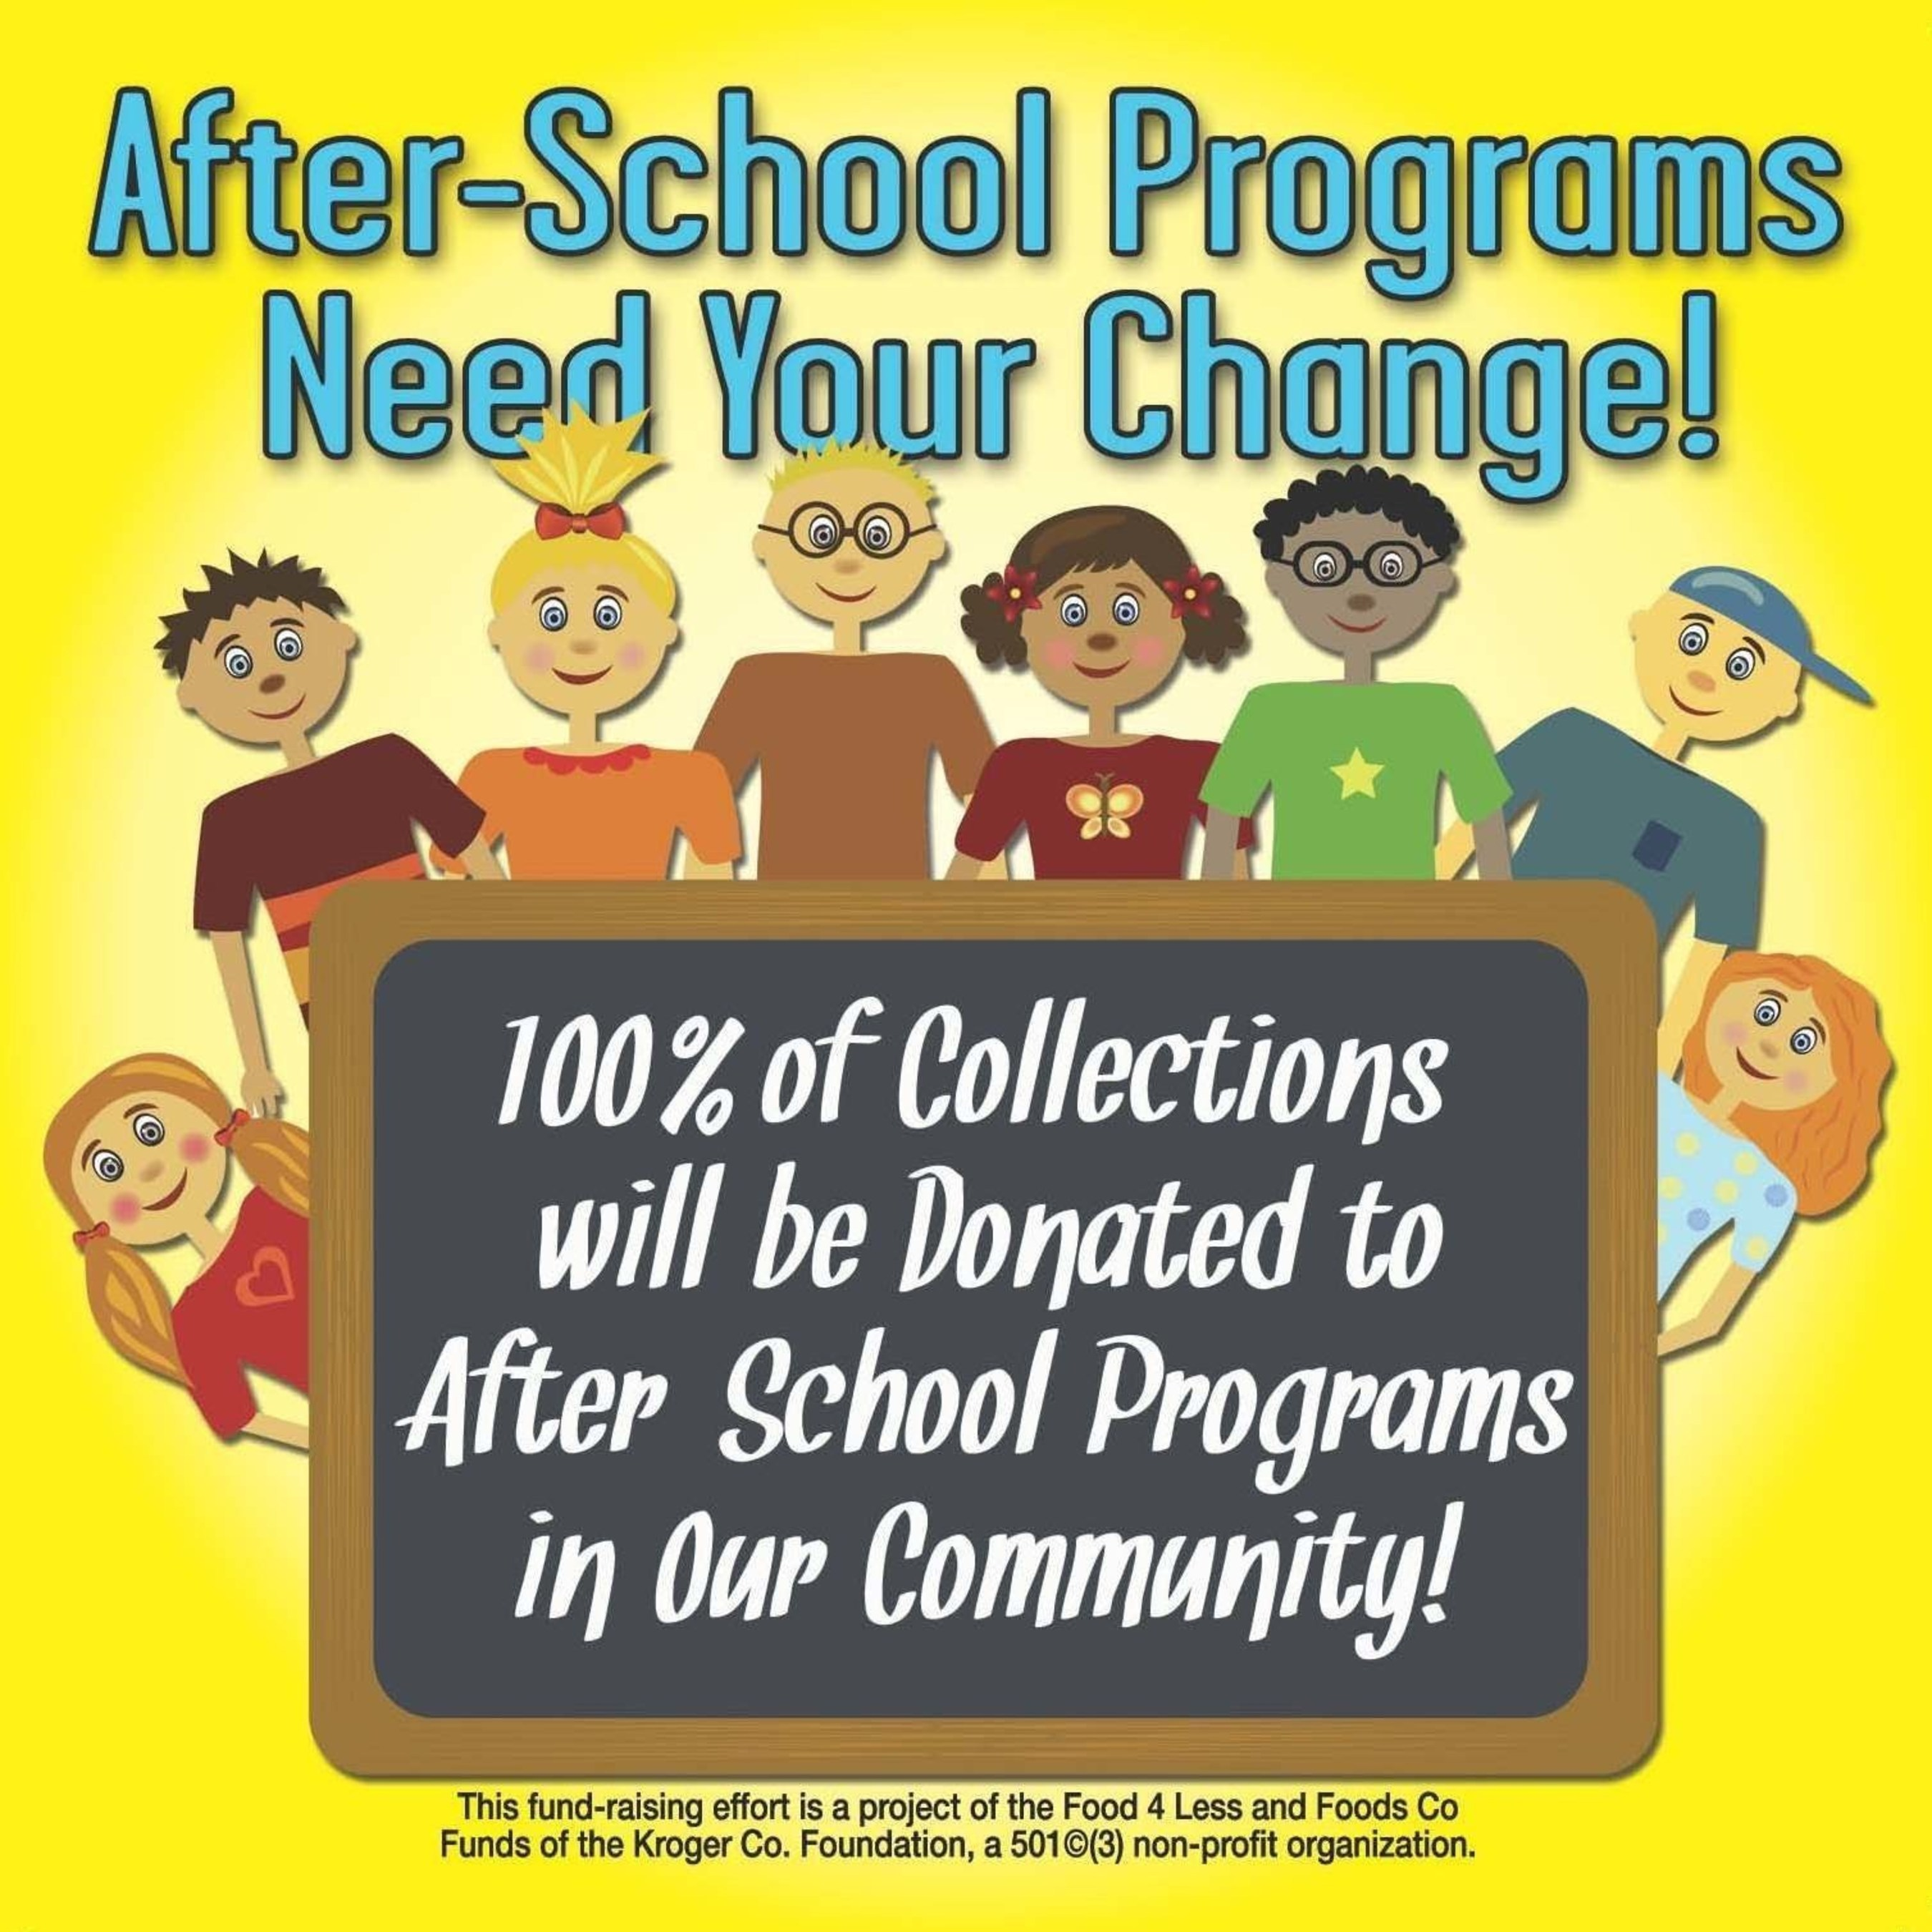 Shoppers can support after-school programs in their community by donating their spare change in specially-marked canisters located at the checkstands in Food 4 Less stores in Southern California and Greater Chicagoland and Foods Co stores in Central and Northern California.